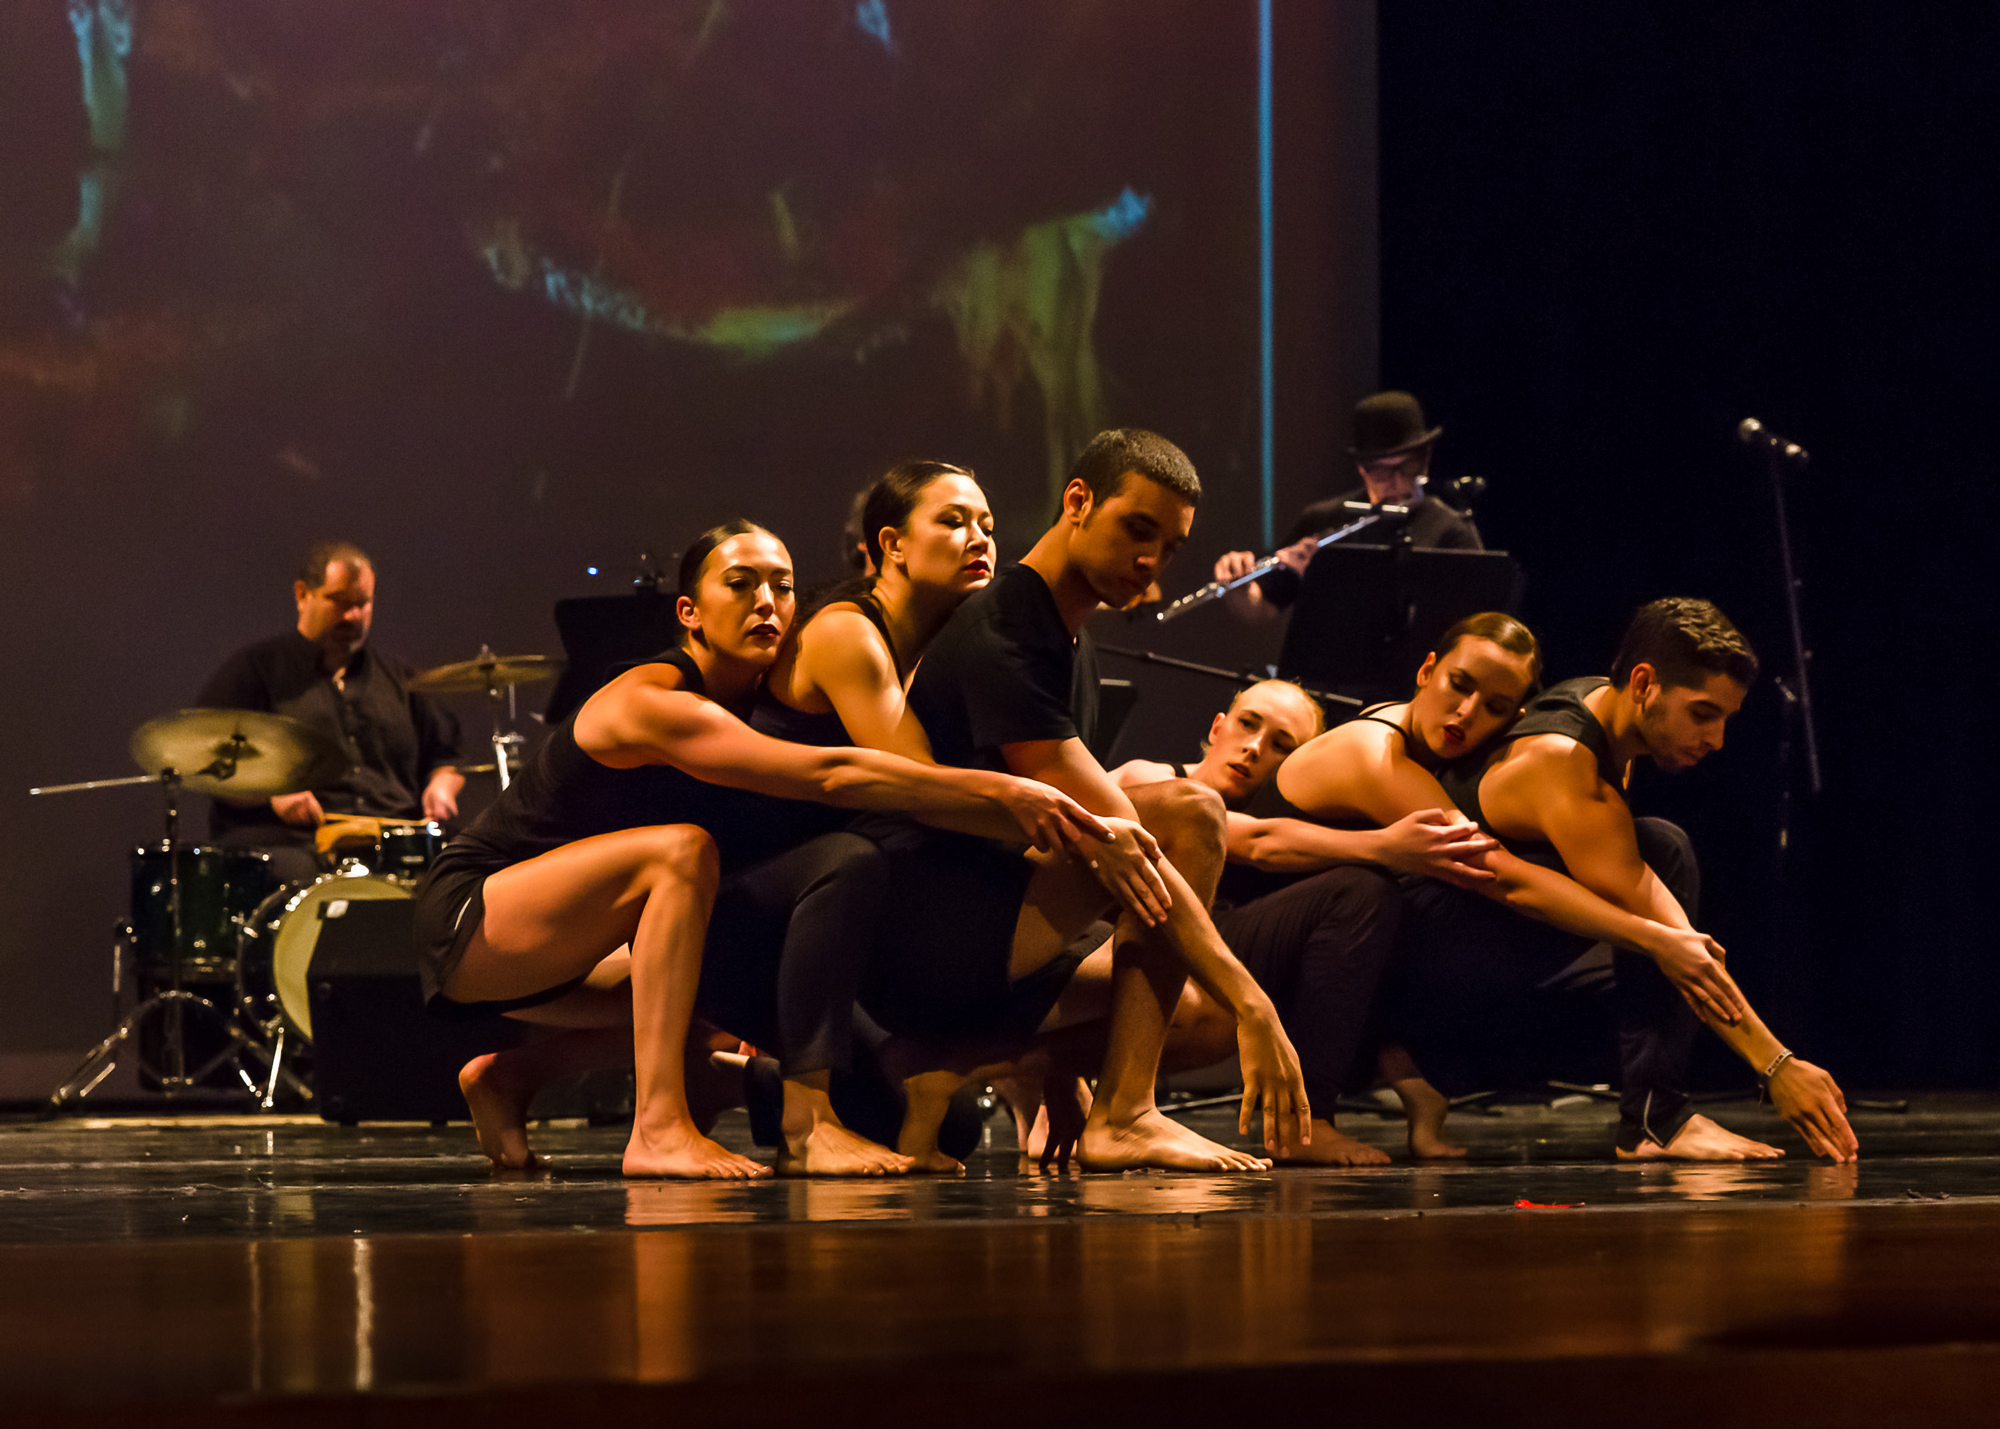 CRDT Treble - CRDT dancers and musicians preview Here Comes Treble, which will debut at Alone/Together in October (Photo by Dan Kapsberger)